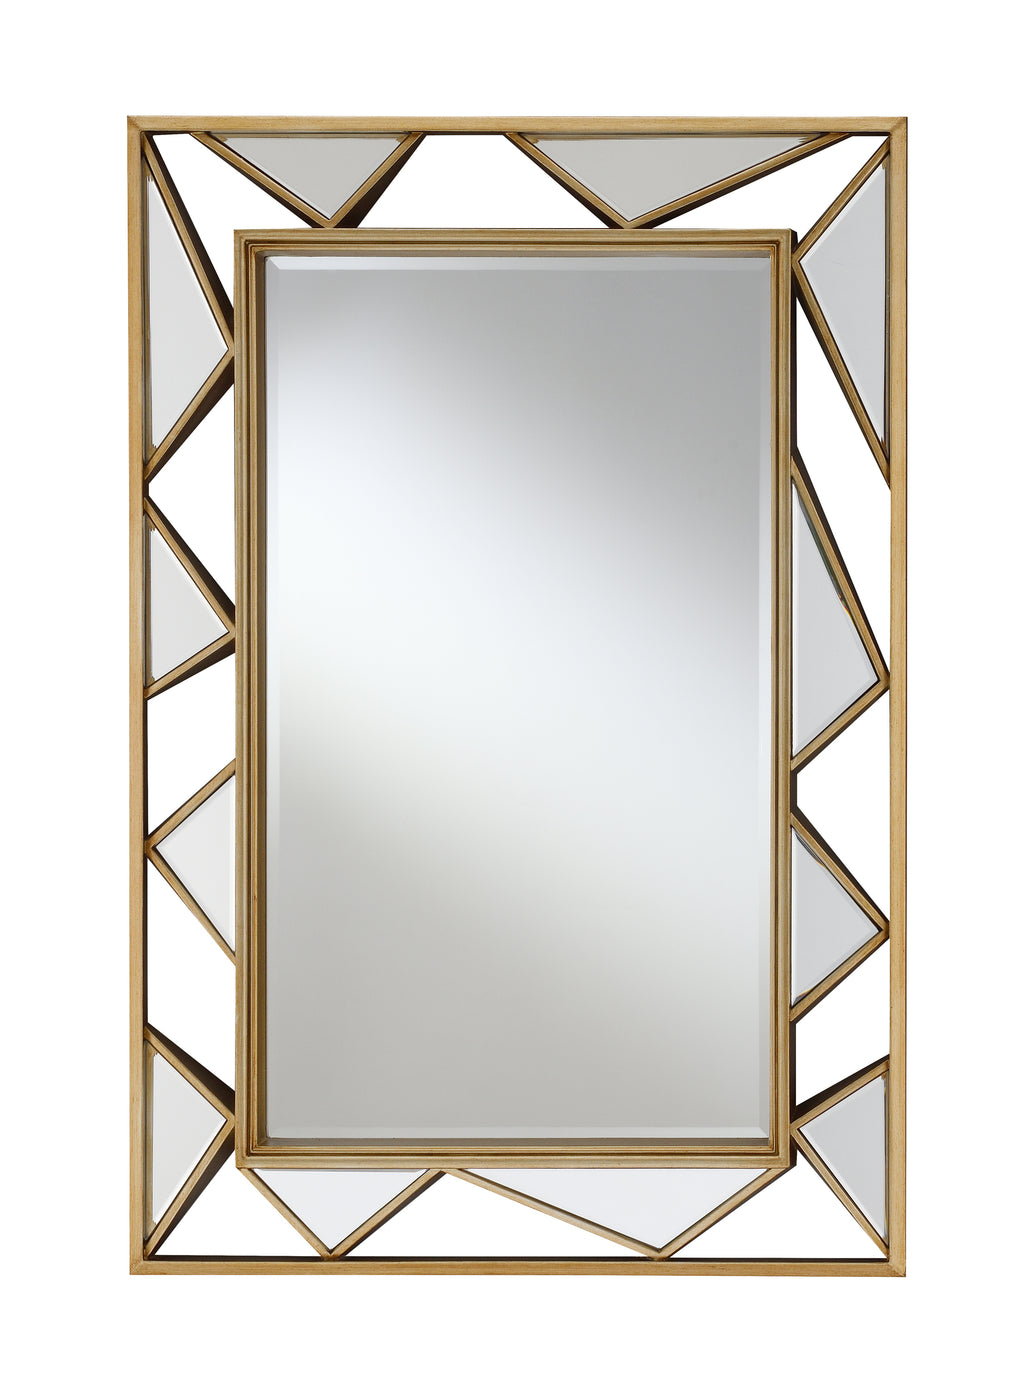 Antique Gold Geometric Wall Mirror